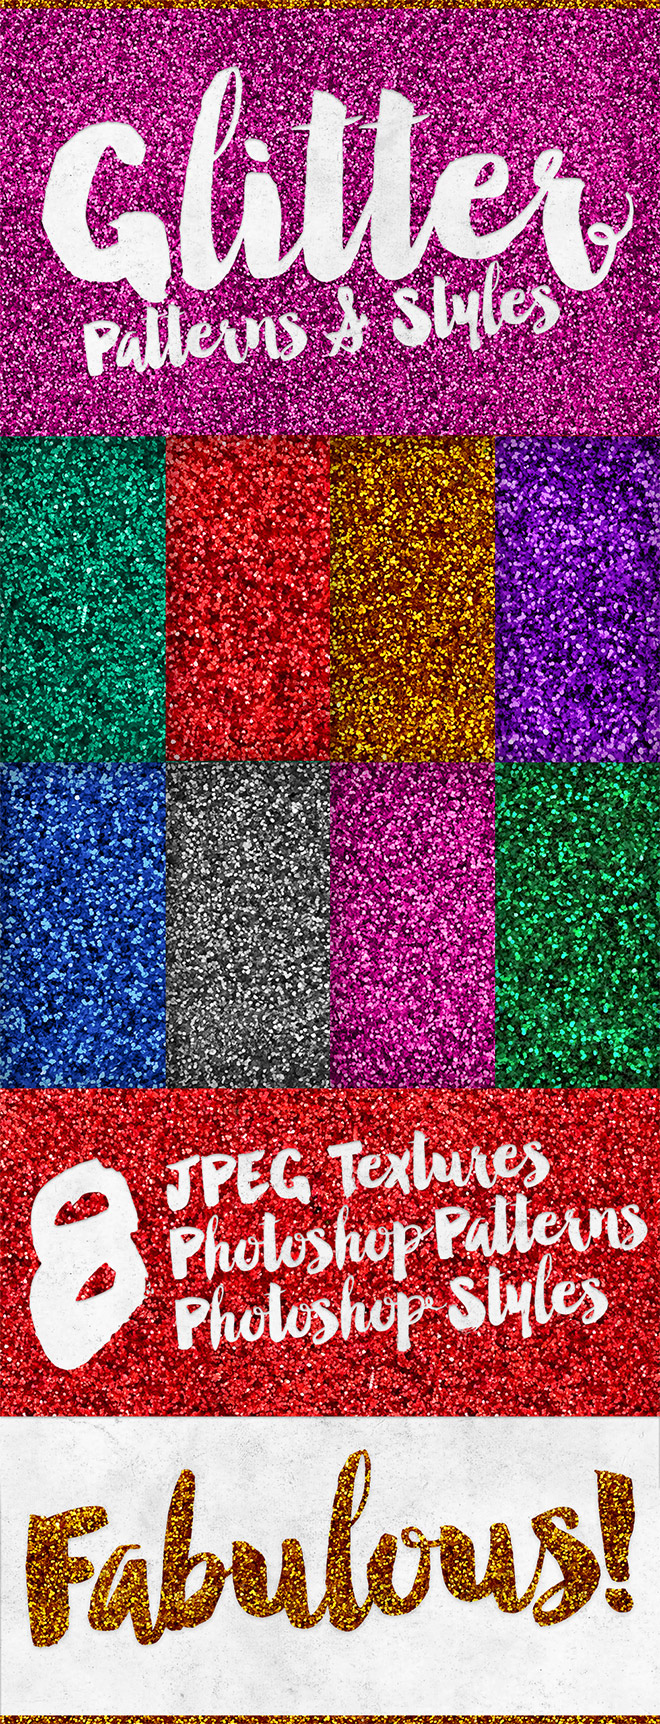 Free Glitter Effect Patterns & Styles for Photoshop